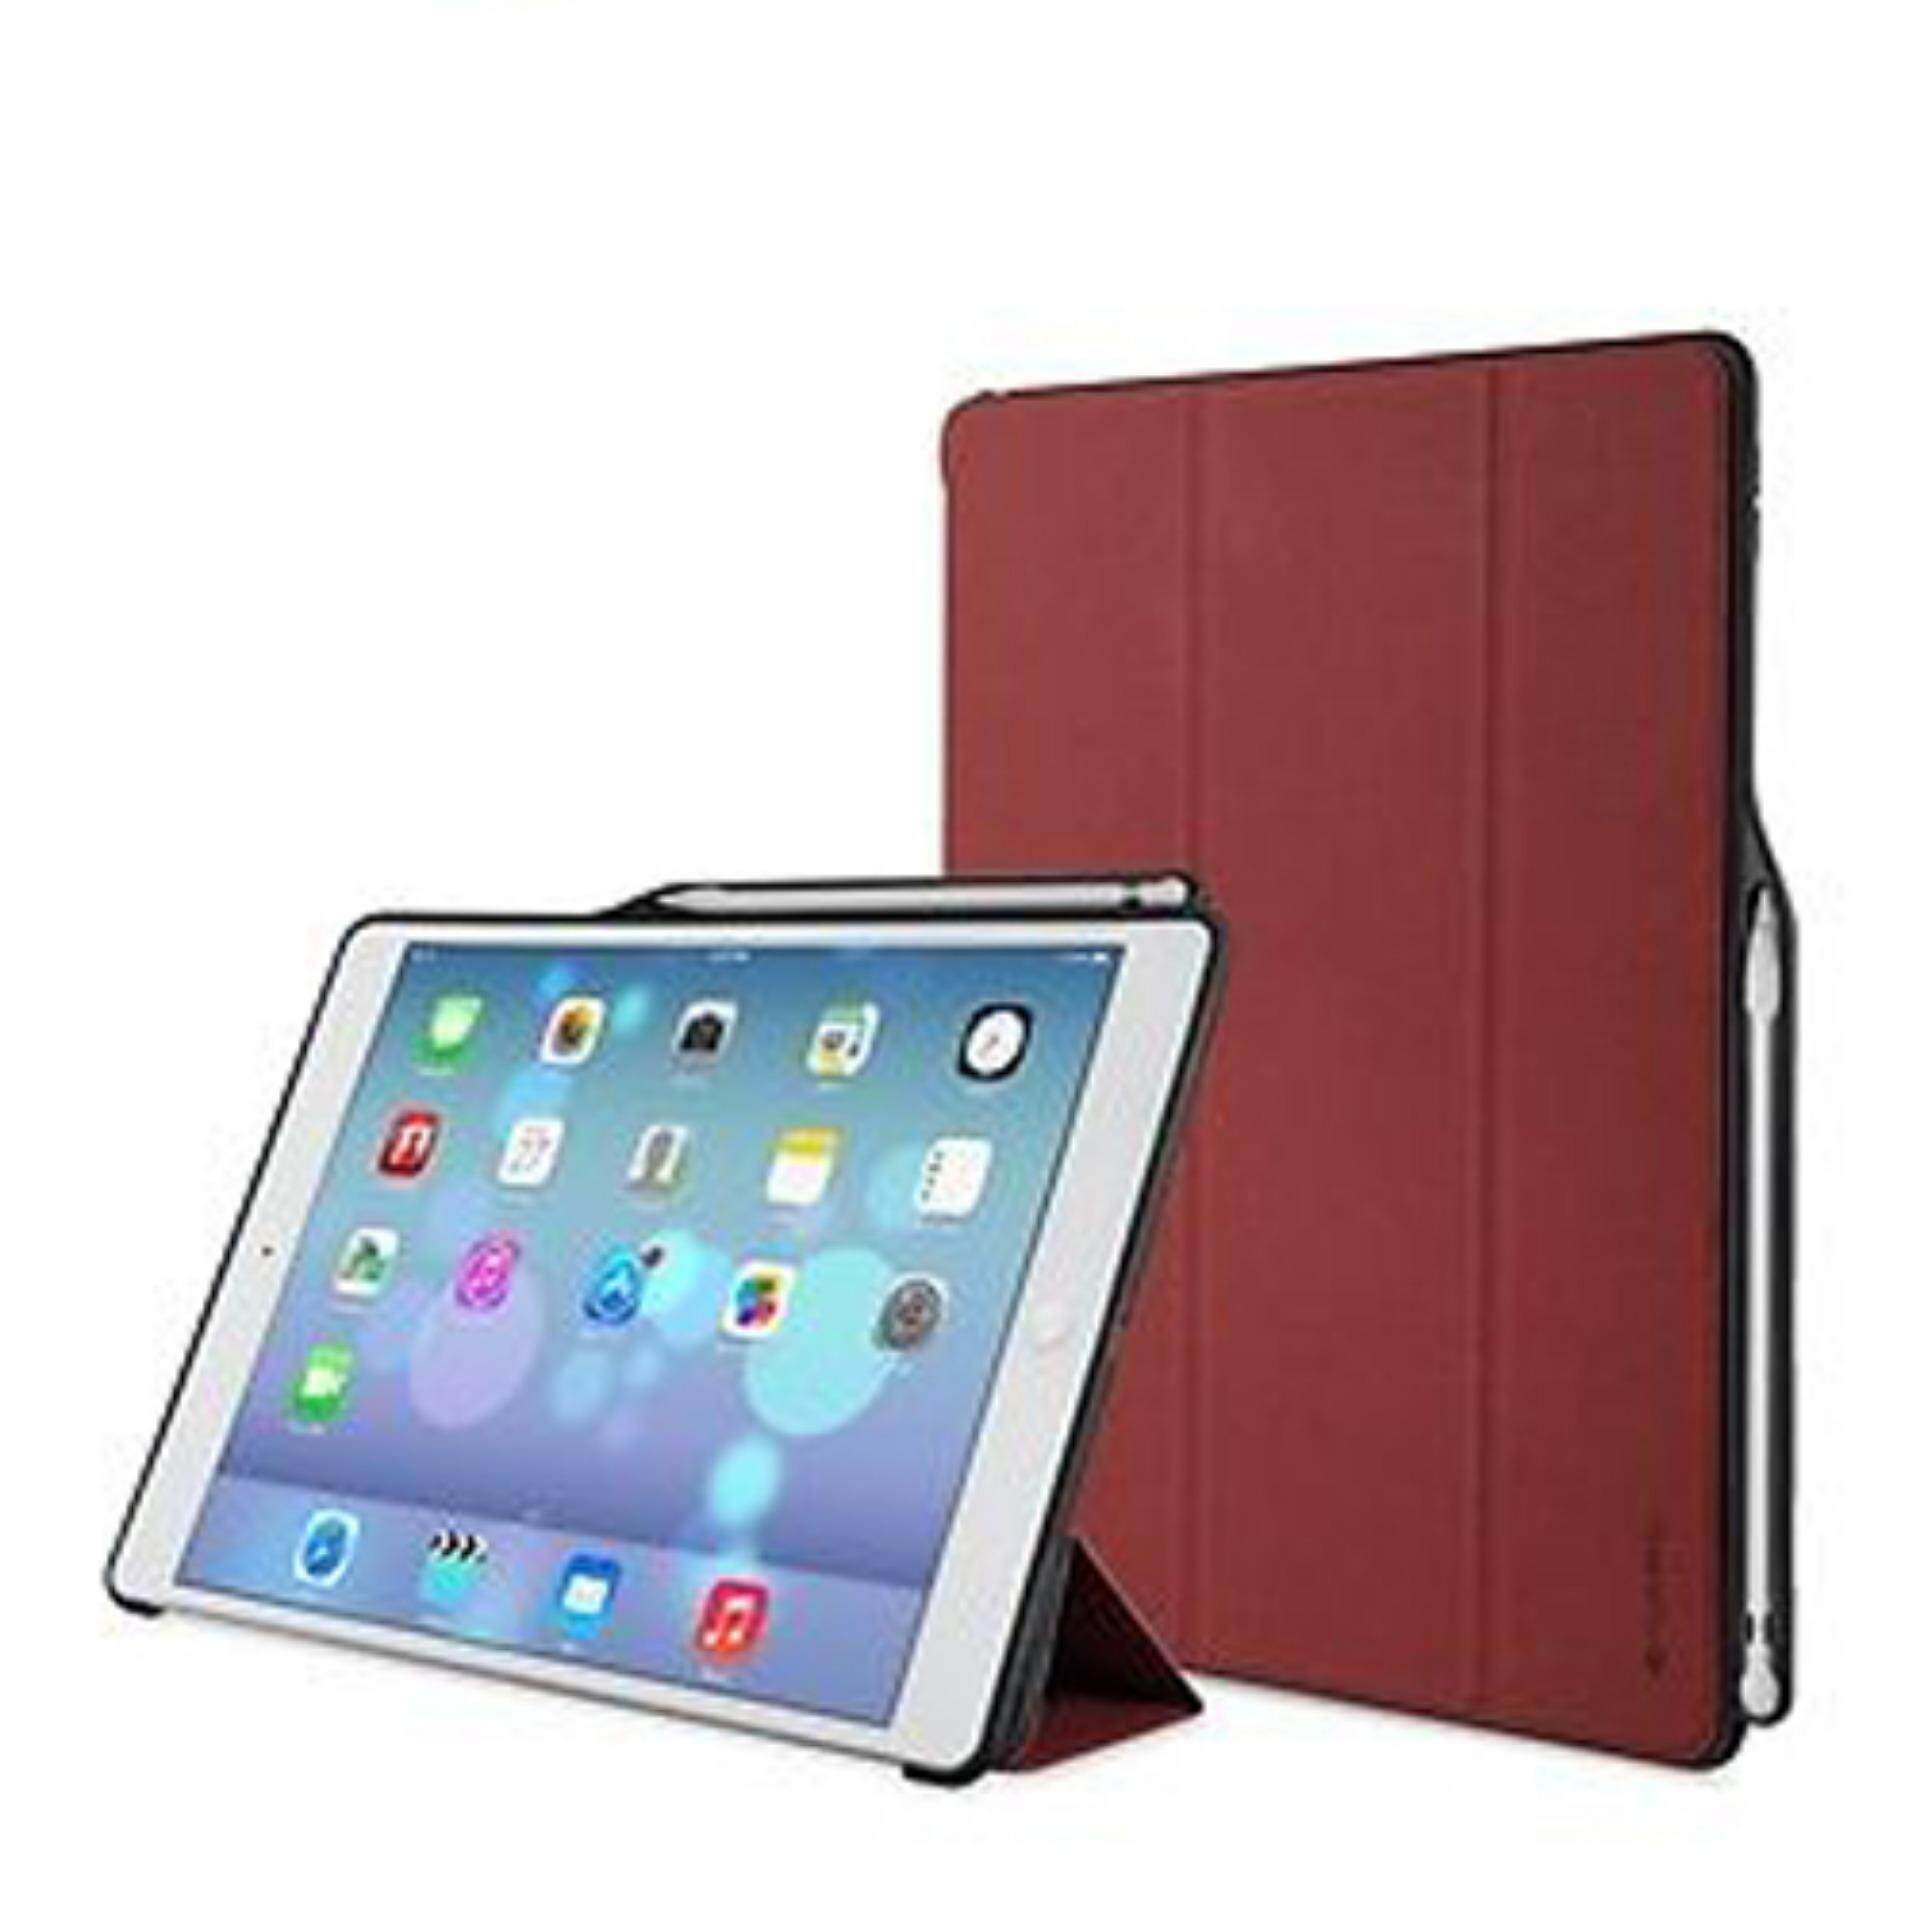 For Ipad Pro Leather Case Xoomz Knight Pu Book Folio 2 3 4 Belk Smartcover Red Ultraslim And Light 129 Ivapo Slim Flip Smart